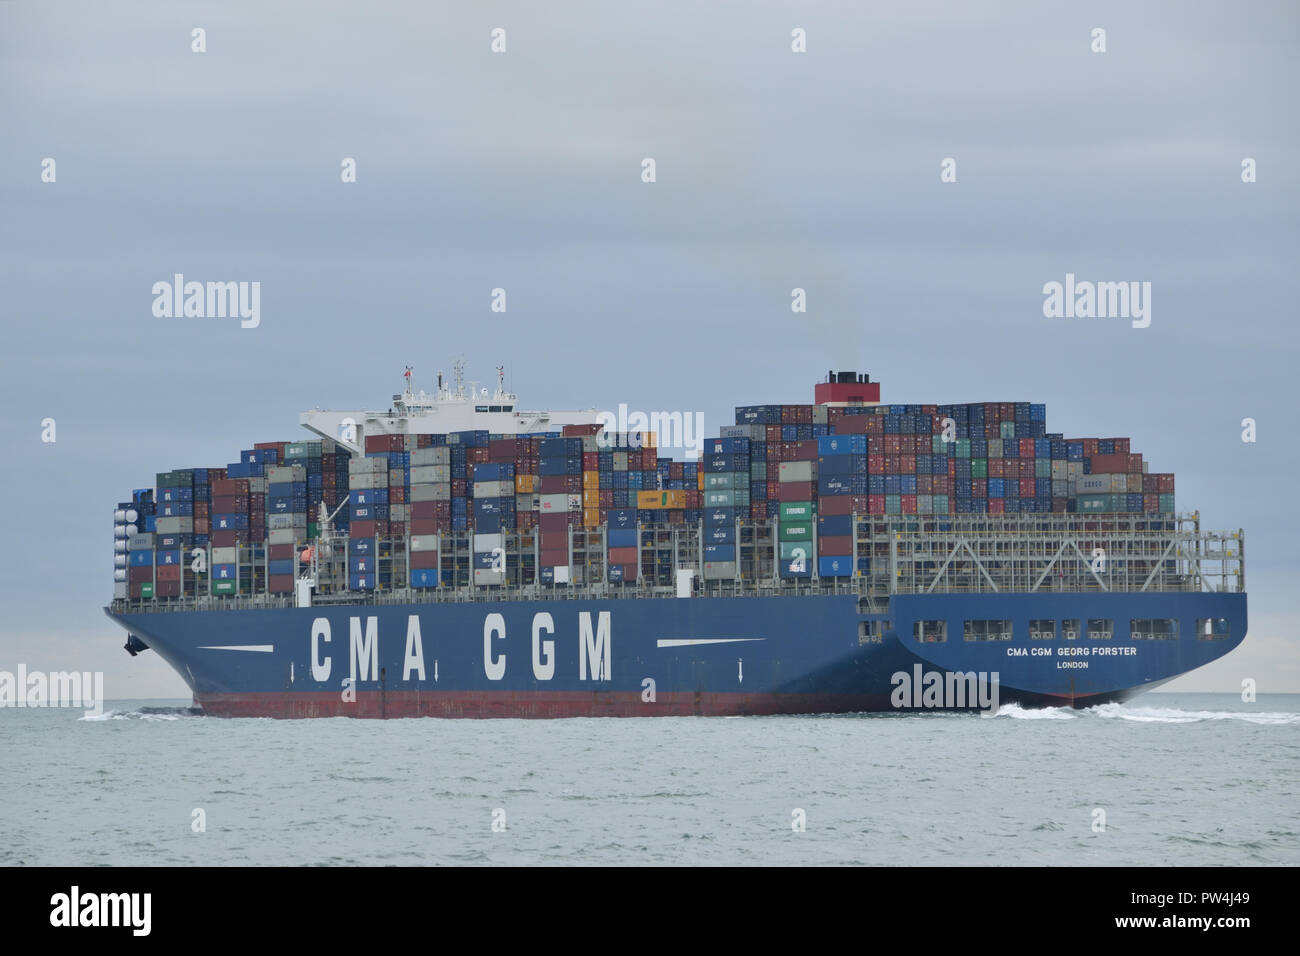 Container Ship CMA CGM Georg Forster seen heading out of the Solent after visiting the port of Southampton - Stock Image